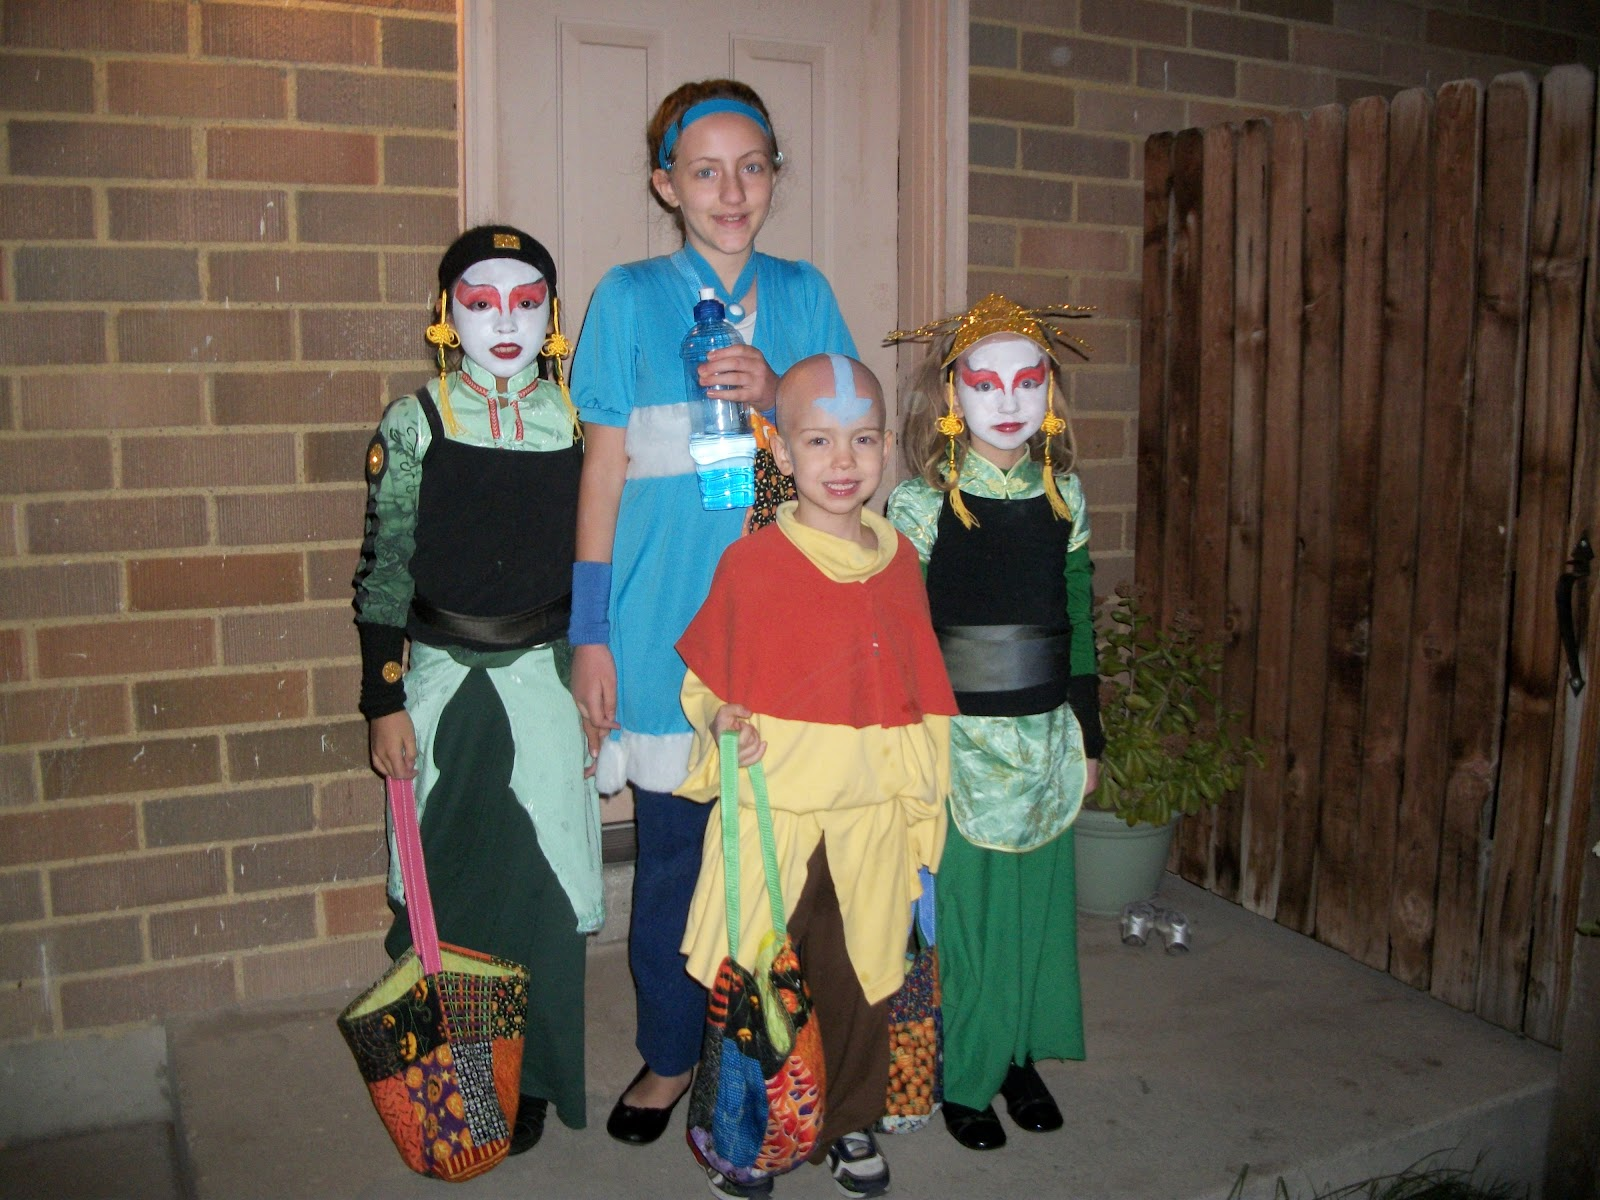 avatar the last airbender halloween costumes